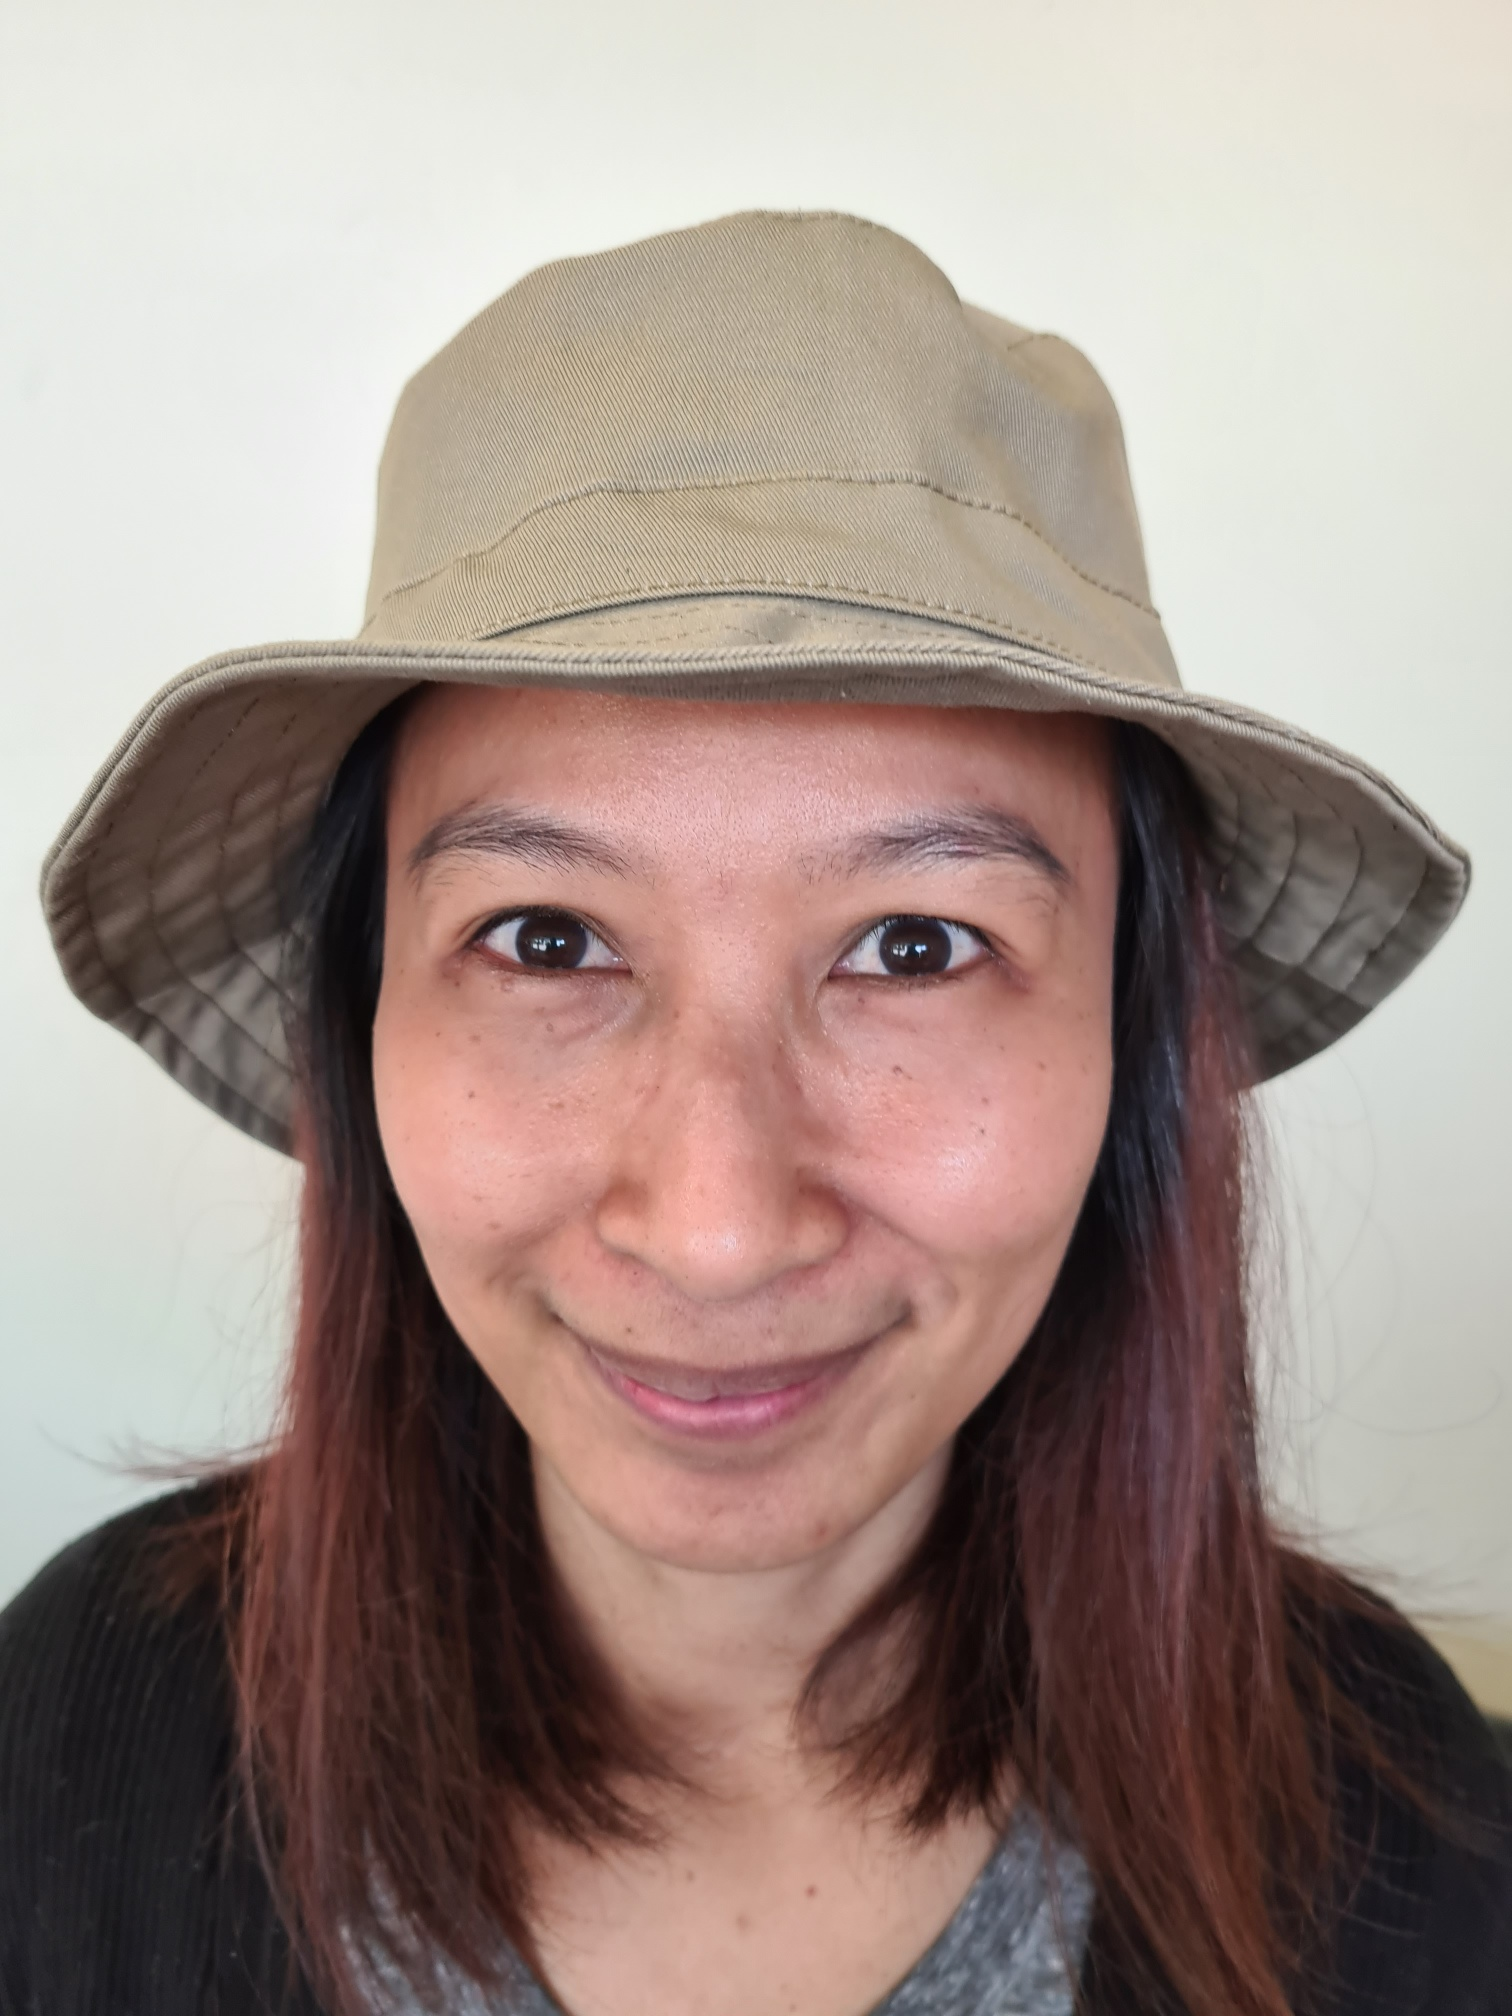 Cotton Bucket Hat Selke Nz High Quality Handcrafted Leather Fabric Hats